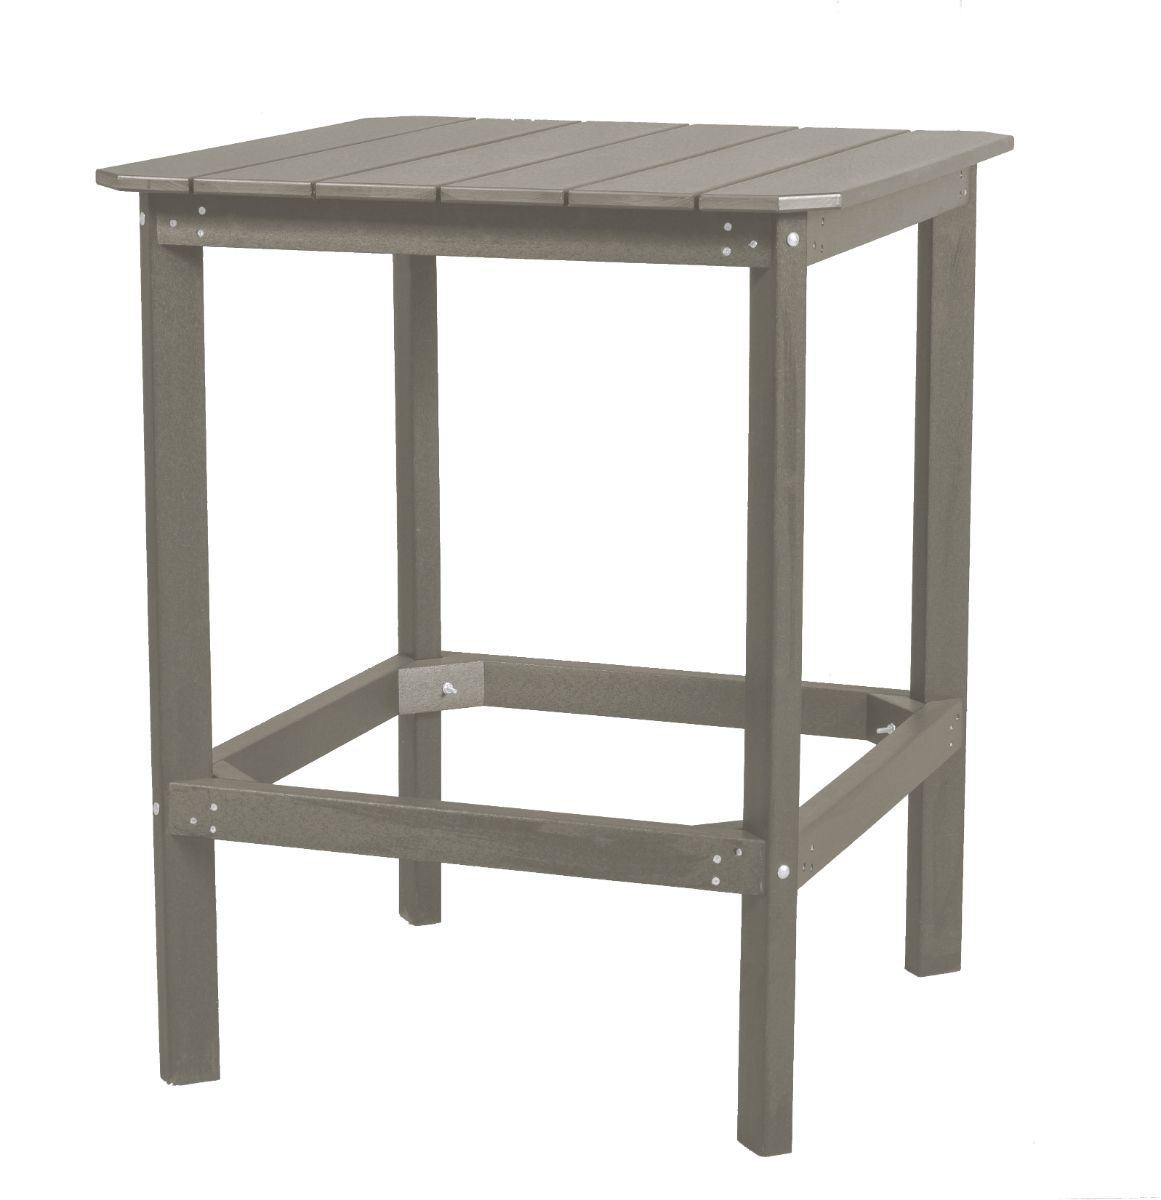 Light Gray Panama High Outdoor Dining Table